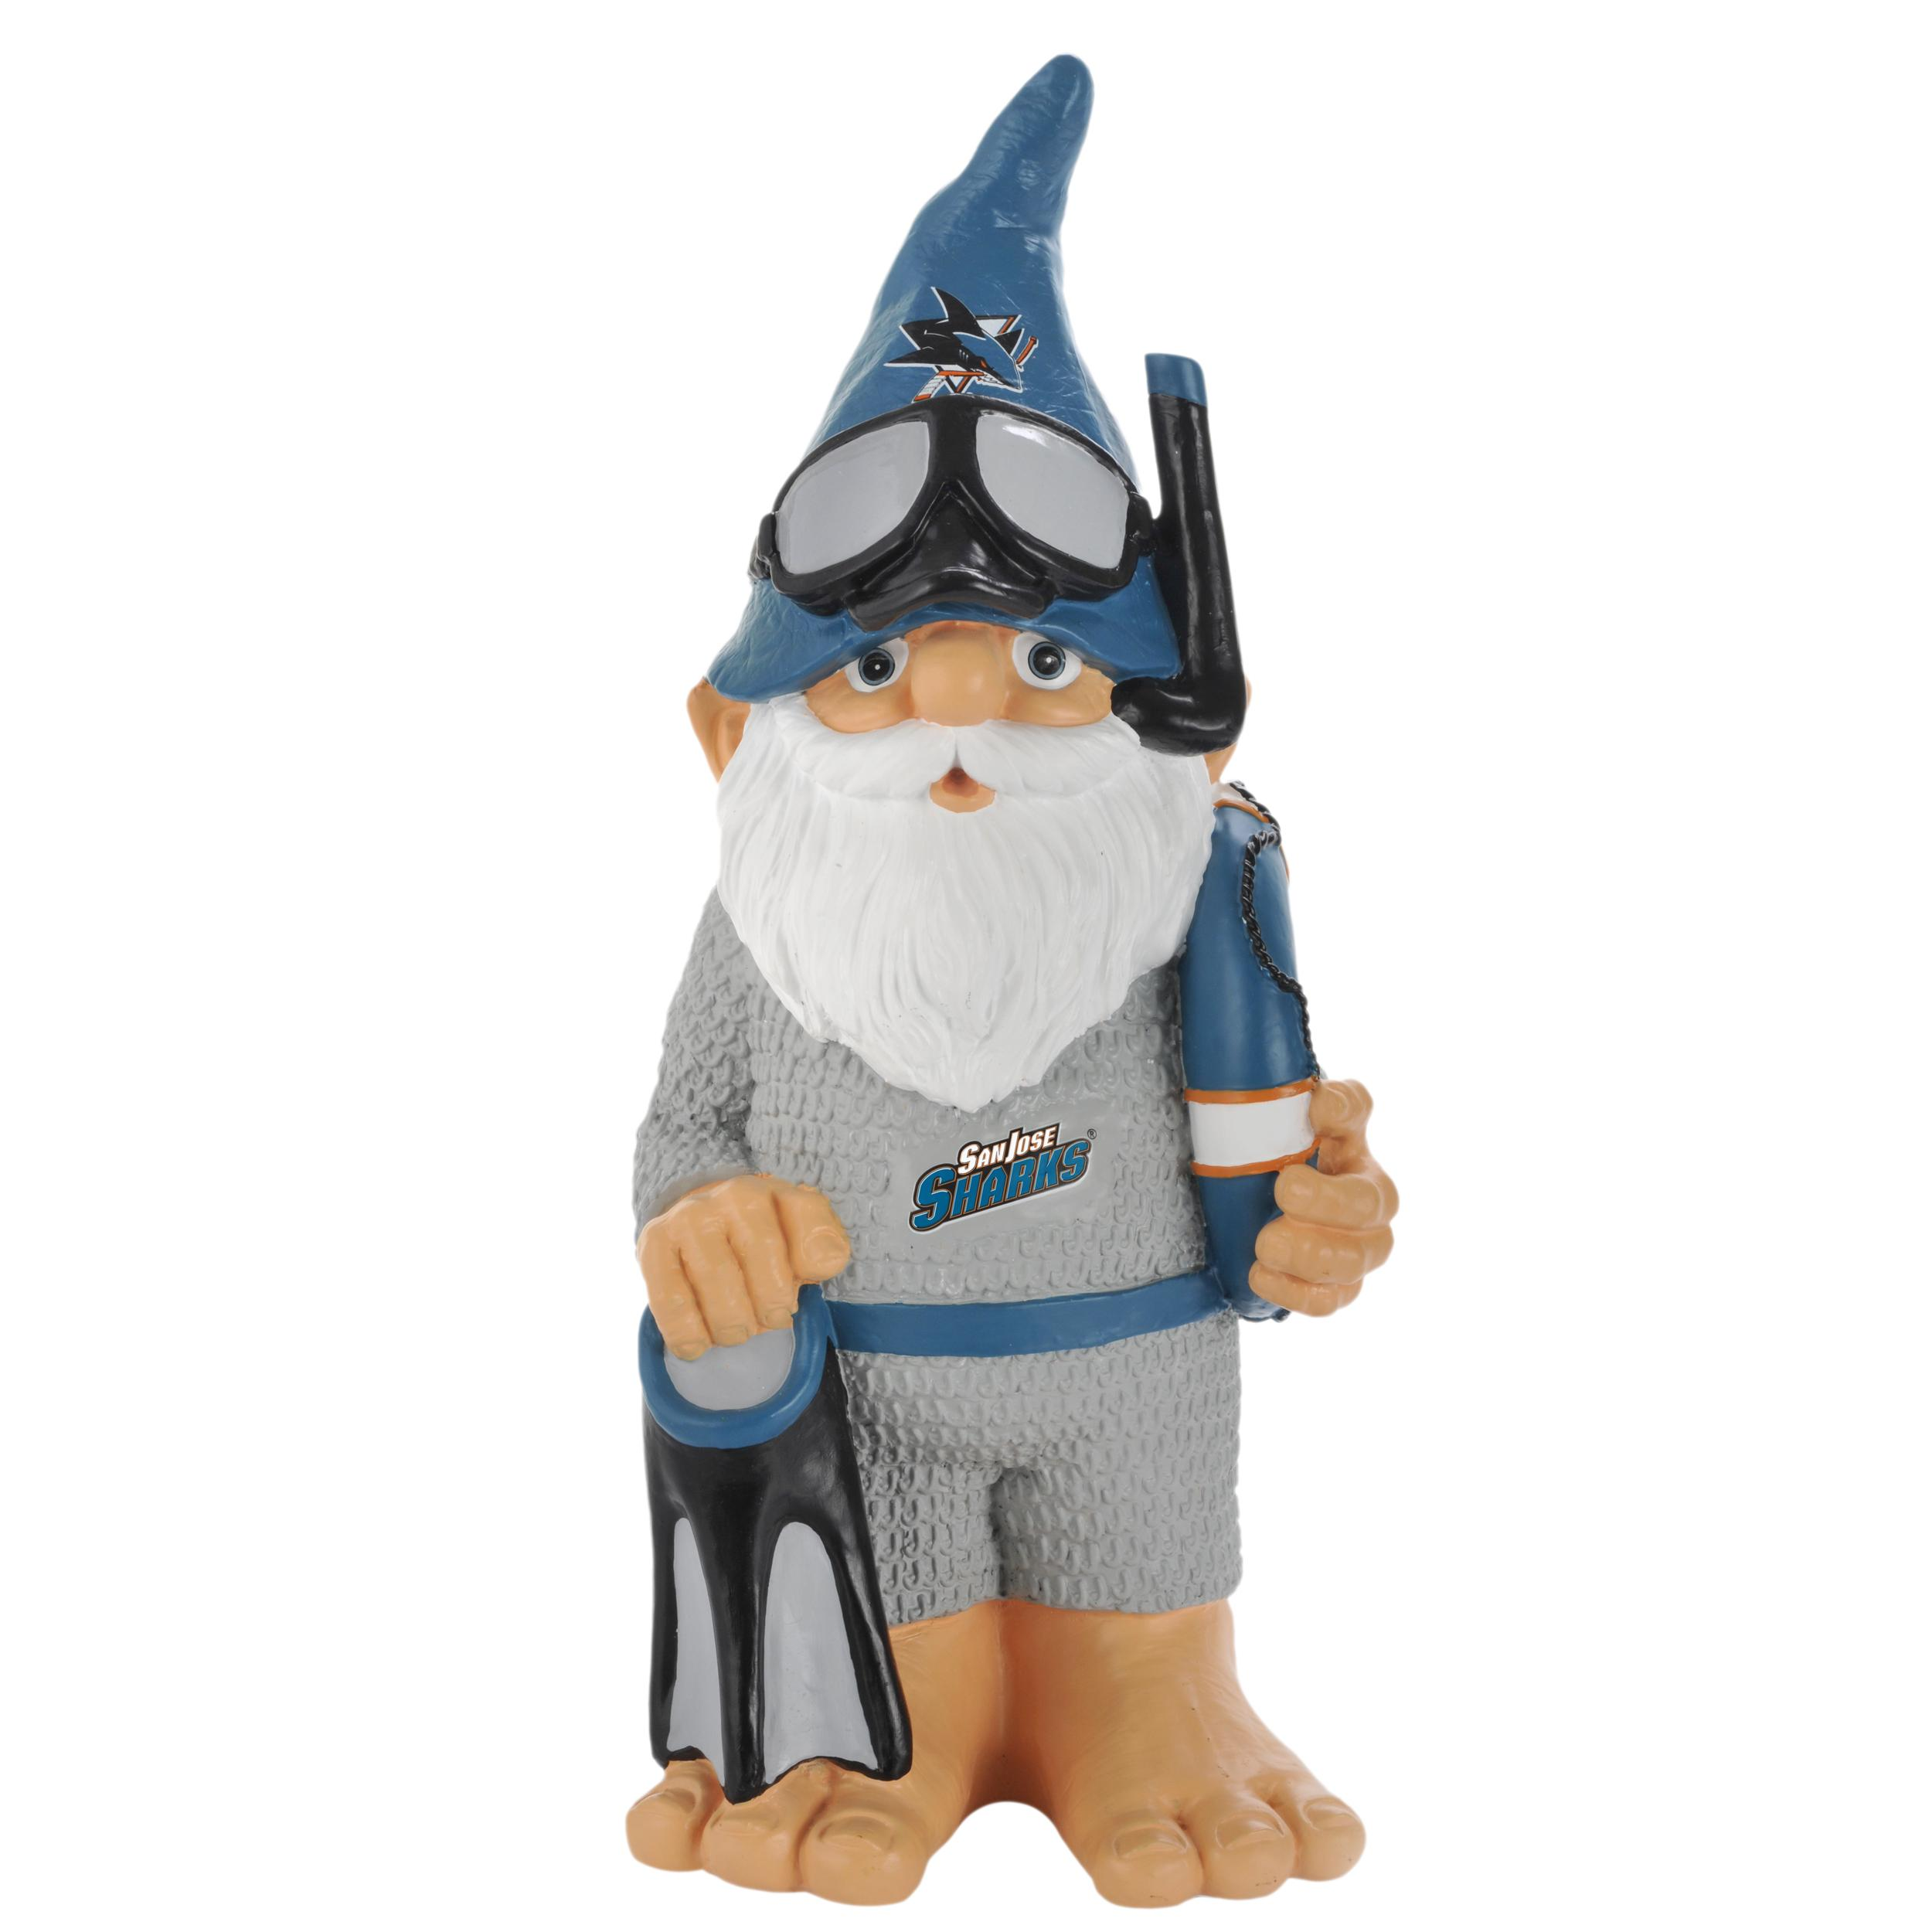 San Jose Sharks 11-inch Thematic Garden Gnome - Thumbnail 0